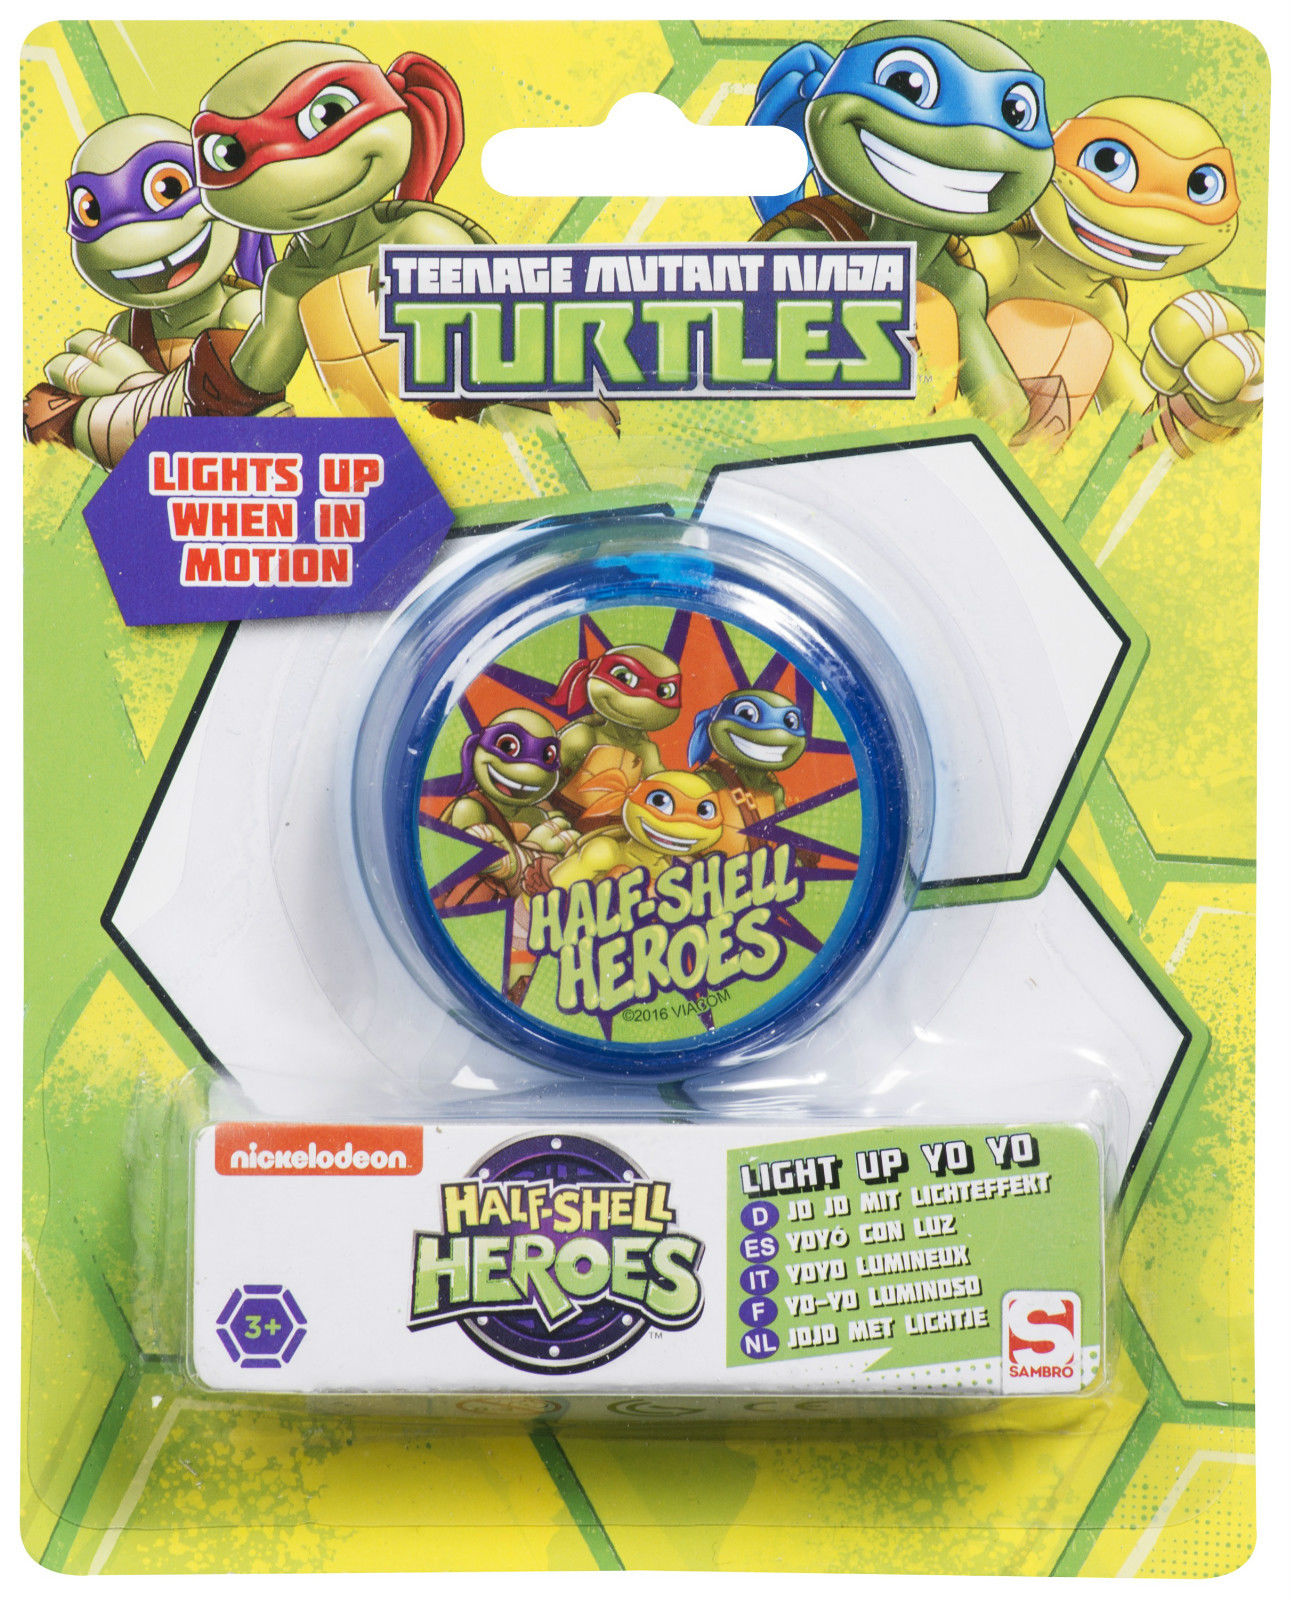 Half-Shell Heroes Light Up Yoyo